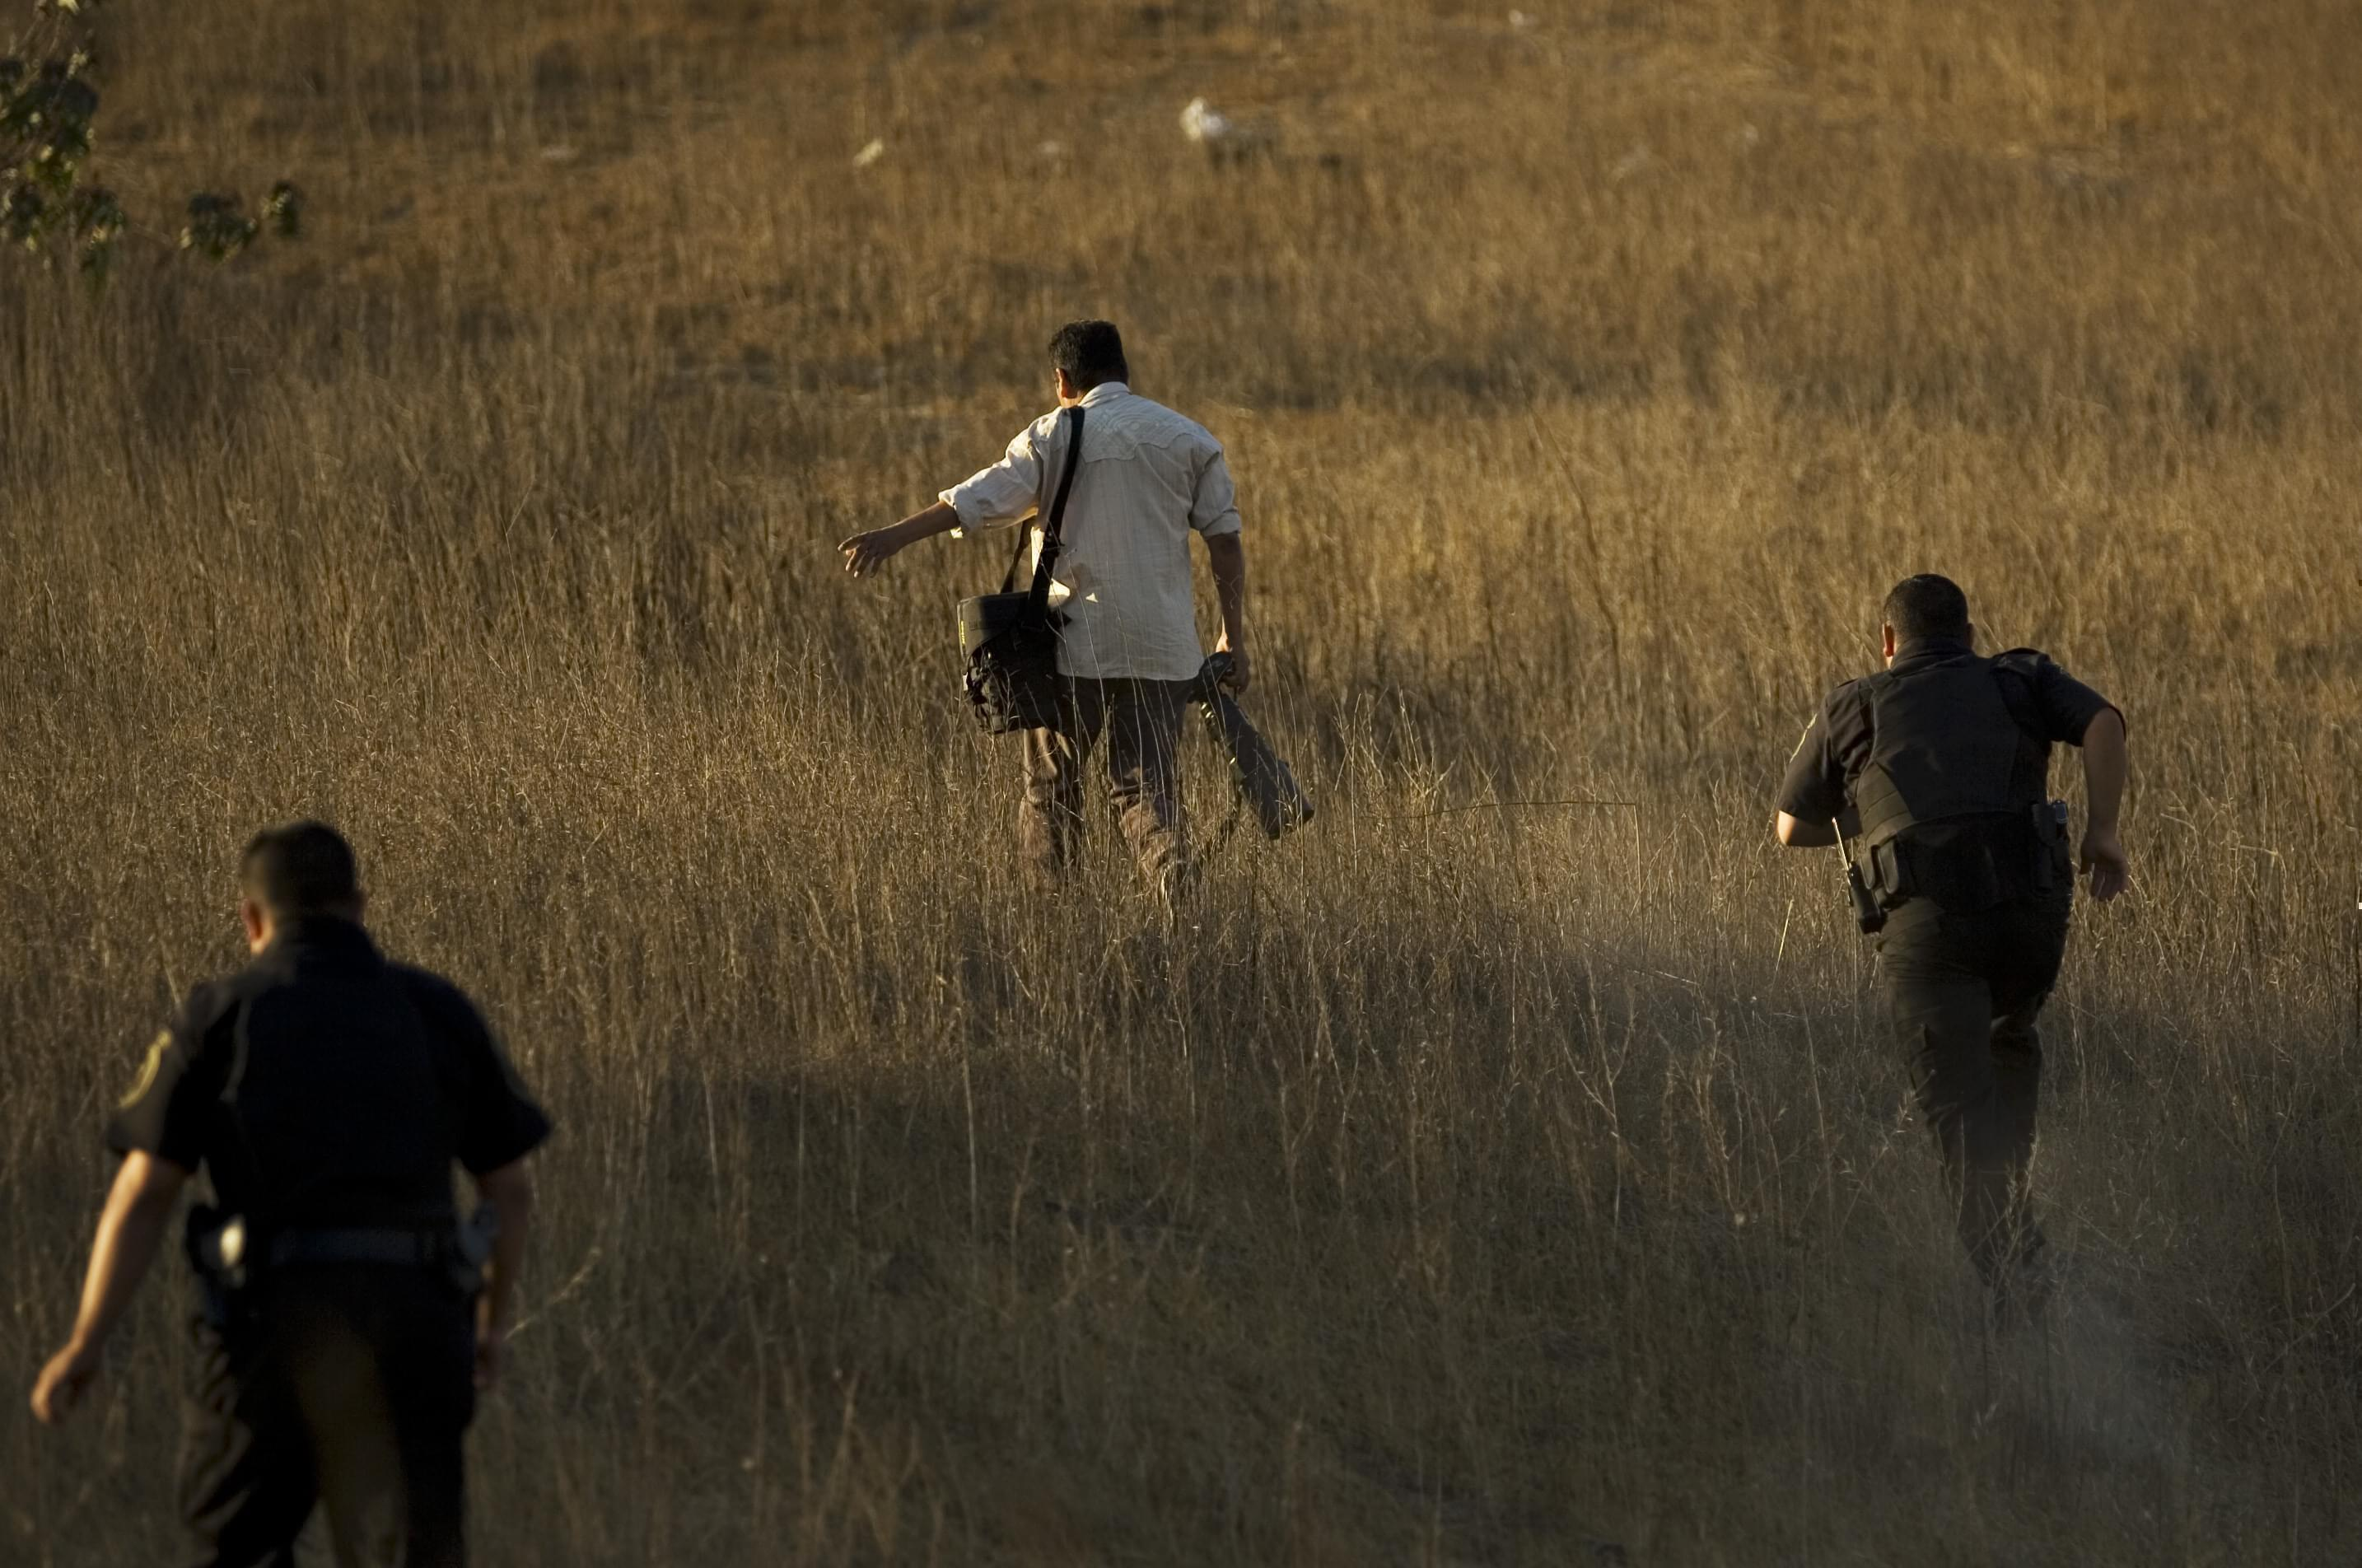 Police officers run after a photographer trying to reach a better view of a crime scene where a police officer was killed in Rosarito, Mexico, Thursday, Oct. 23, 2008.